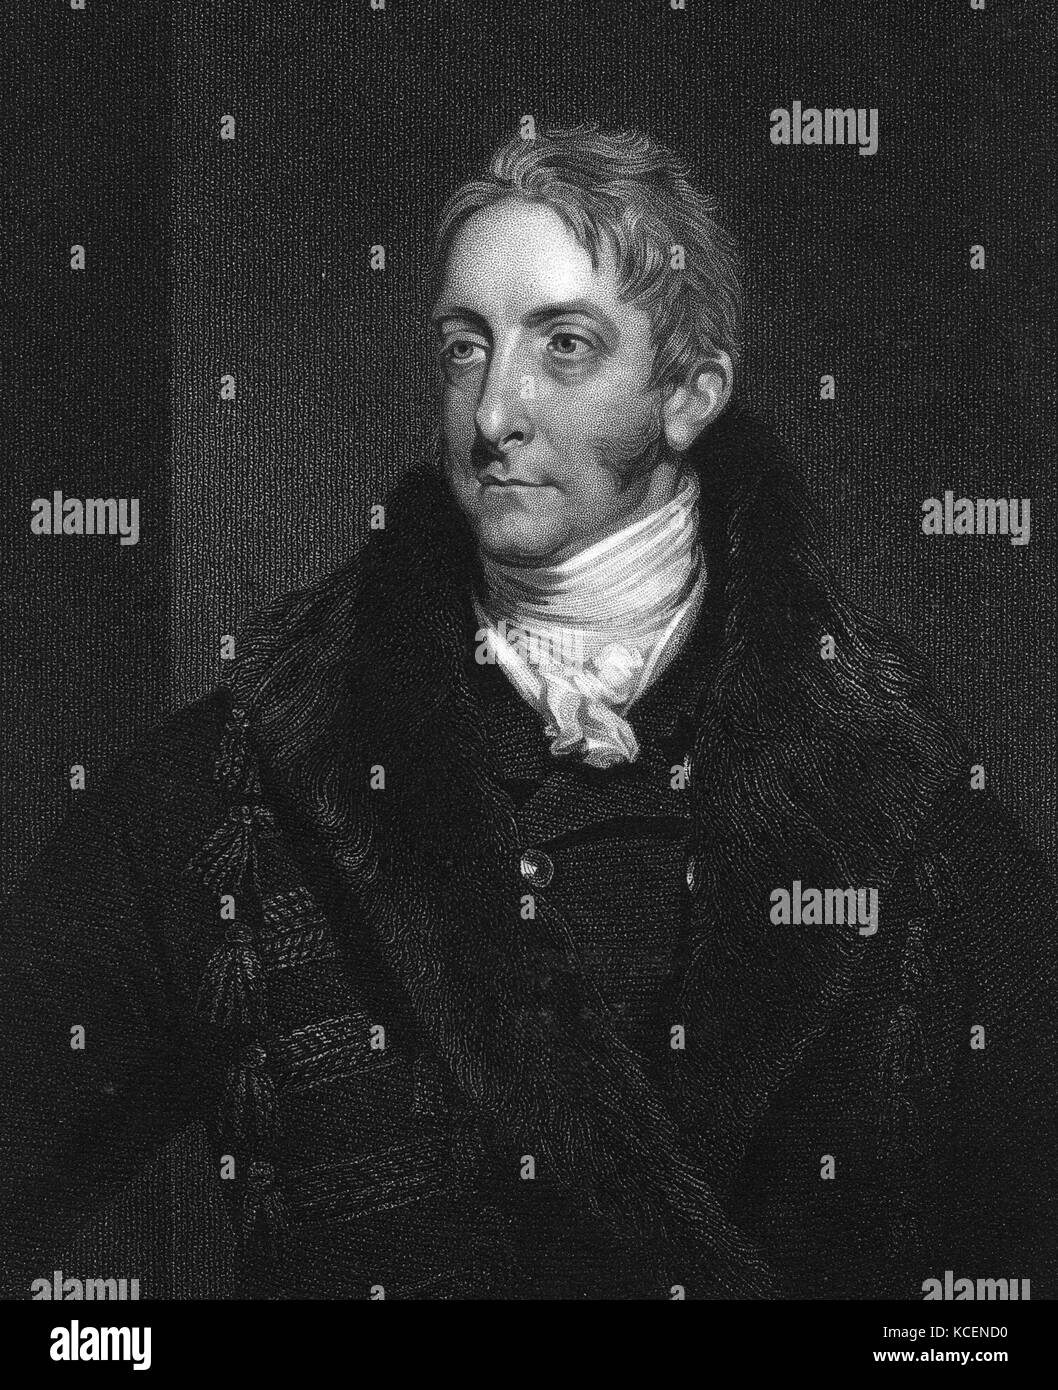 Portrait of Cropley Ashley-Cooper, 6th Earl of Shaftesbury (1768-1851) a British politician. Dated 19th Century - Stock Image